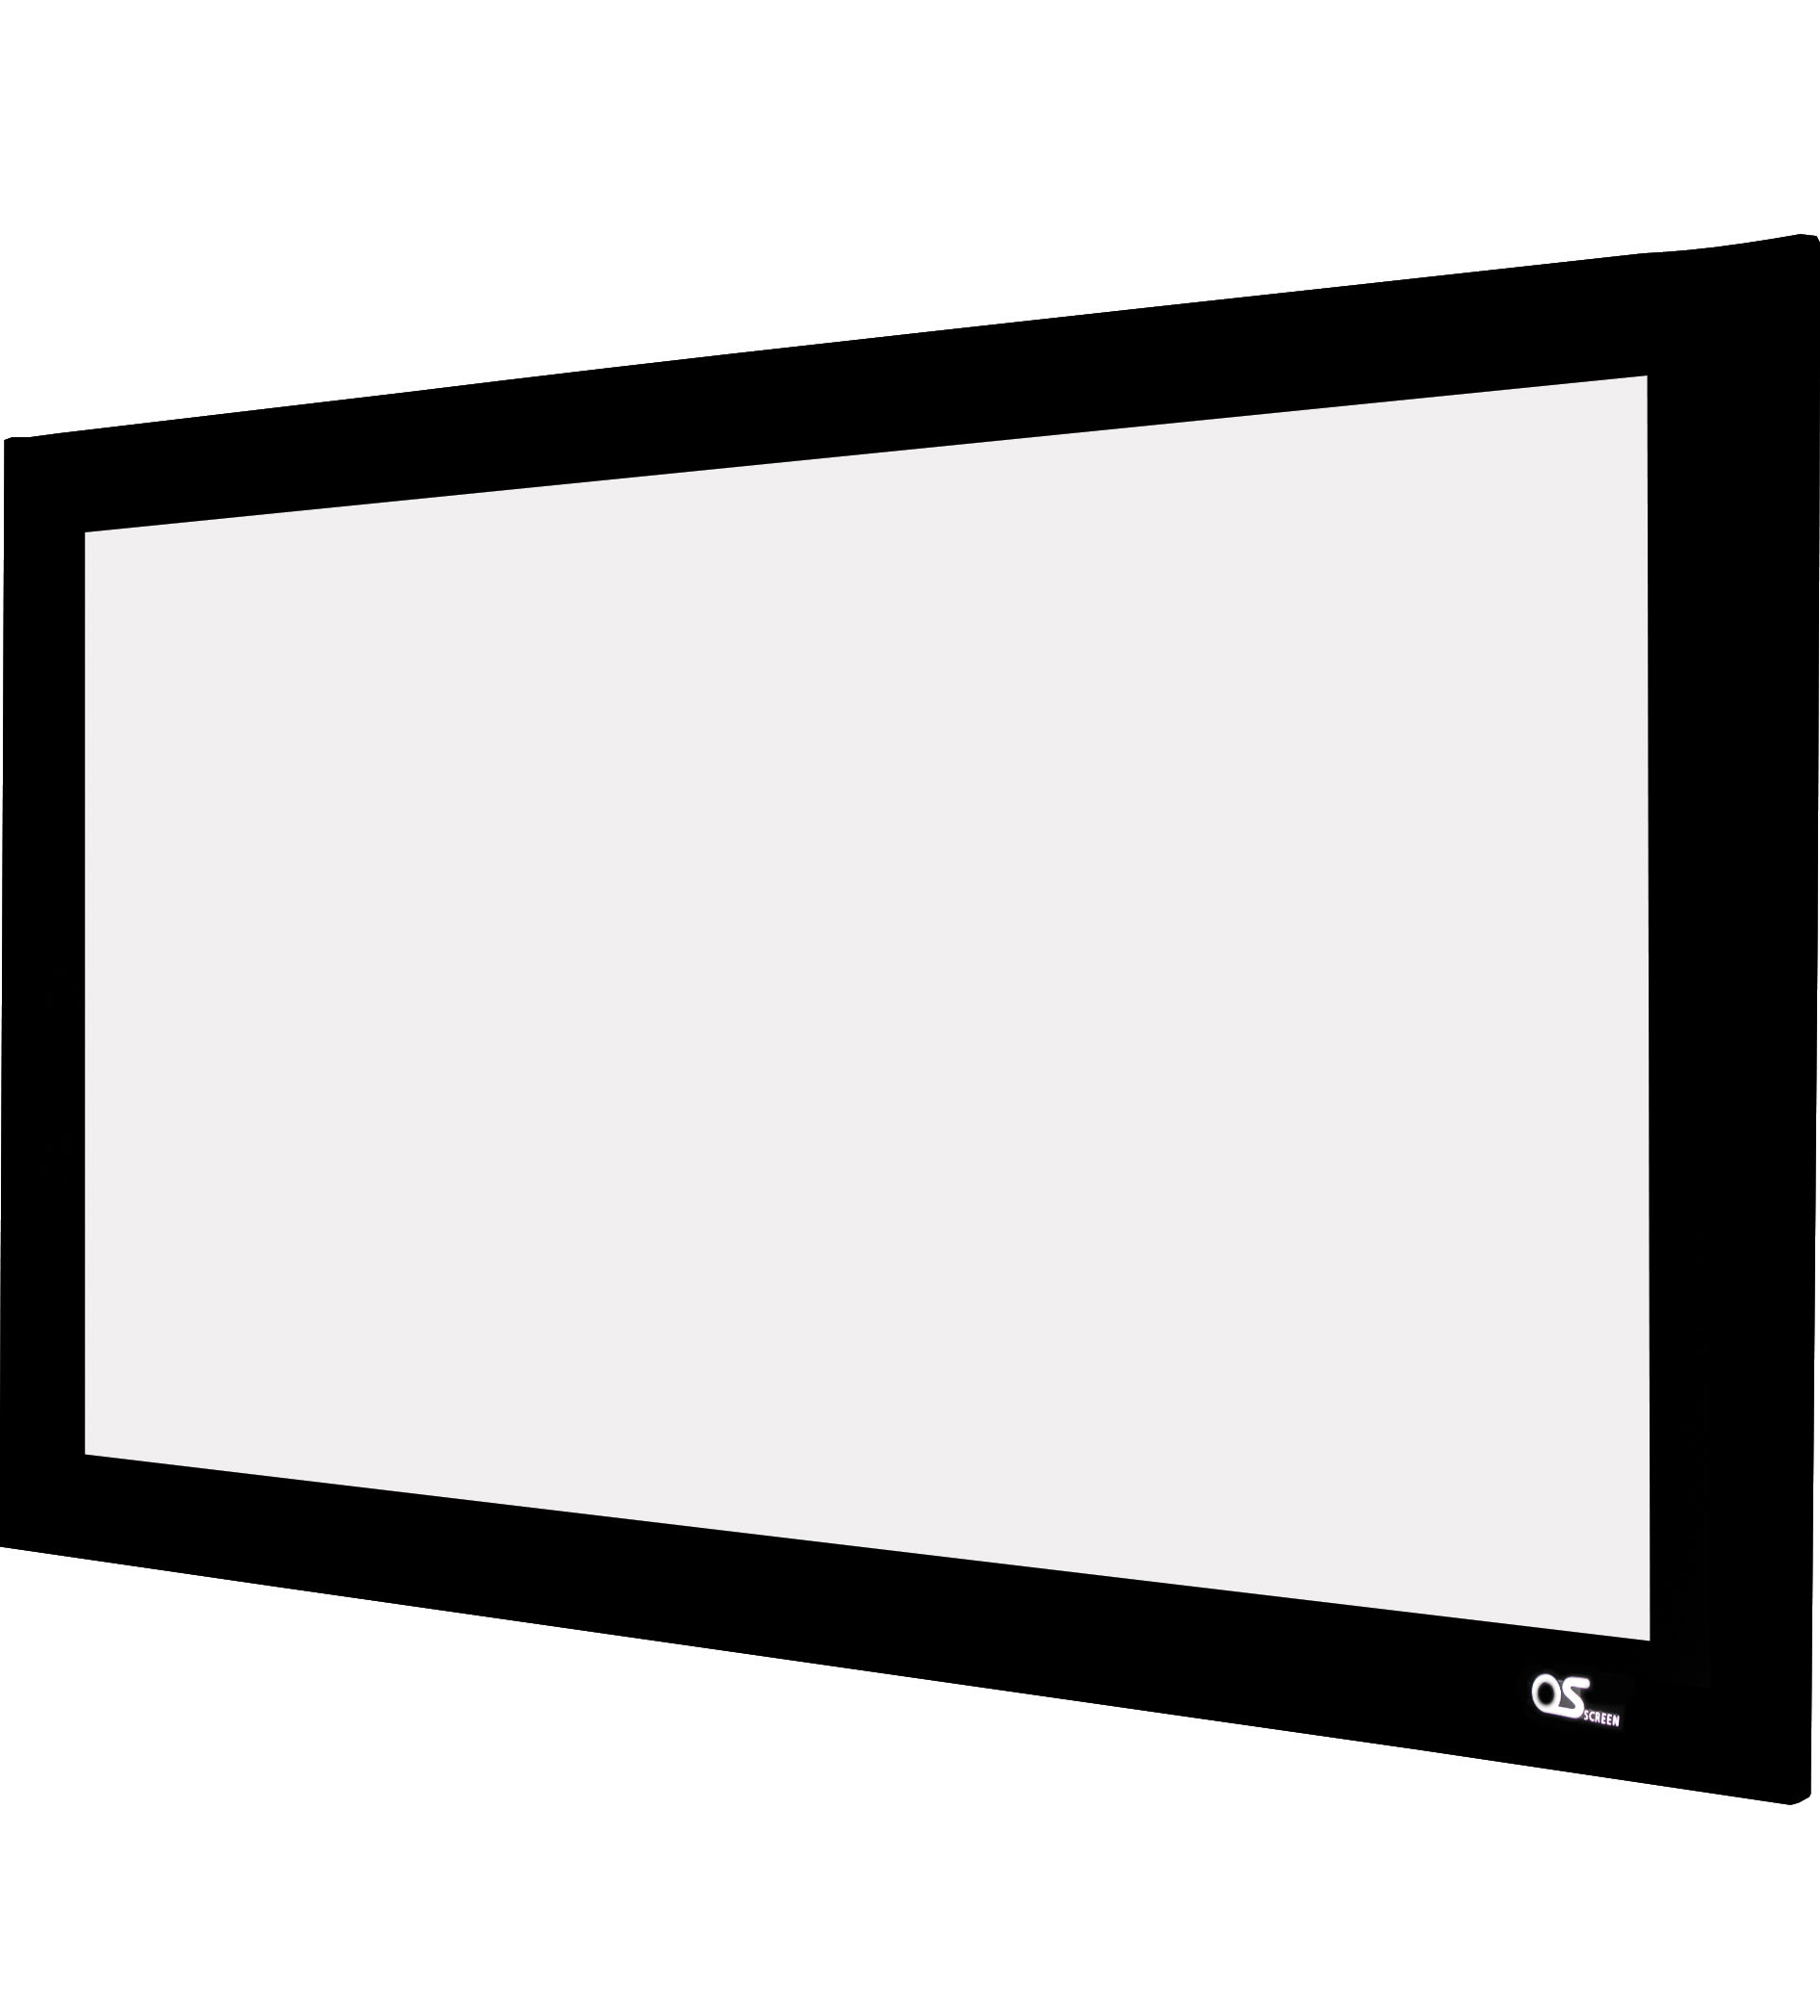 OS Screen A1-90H 199 x 112 cm